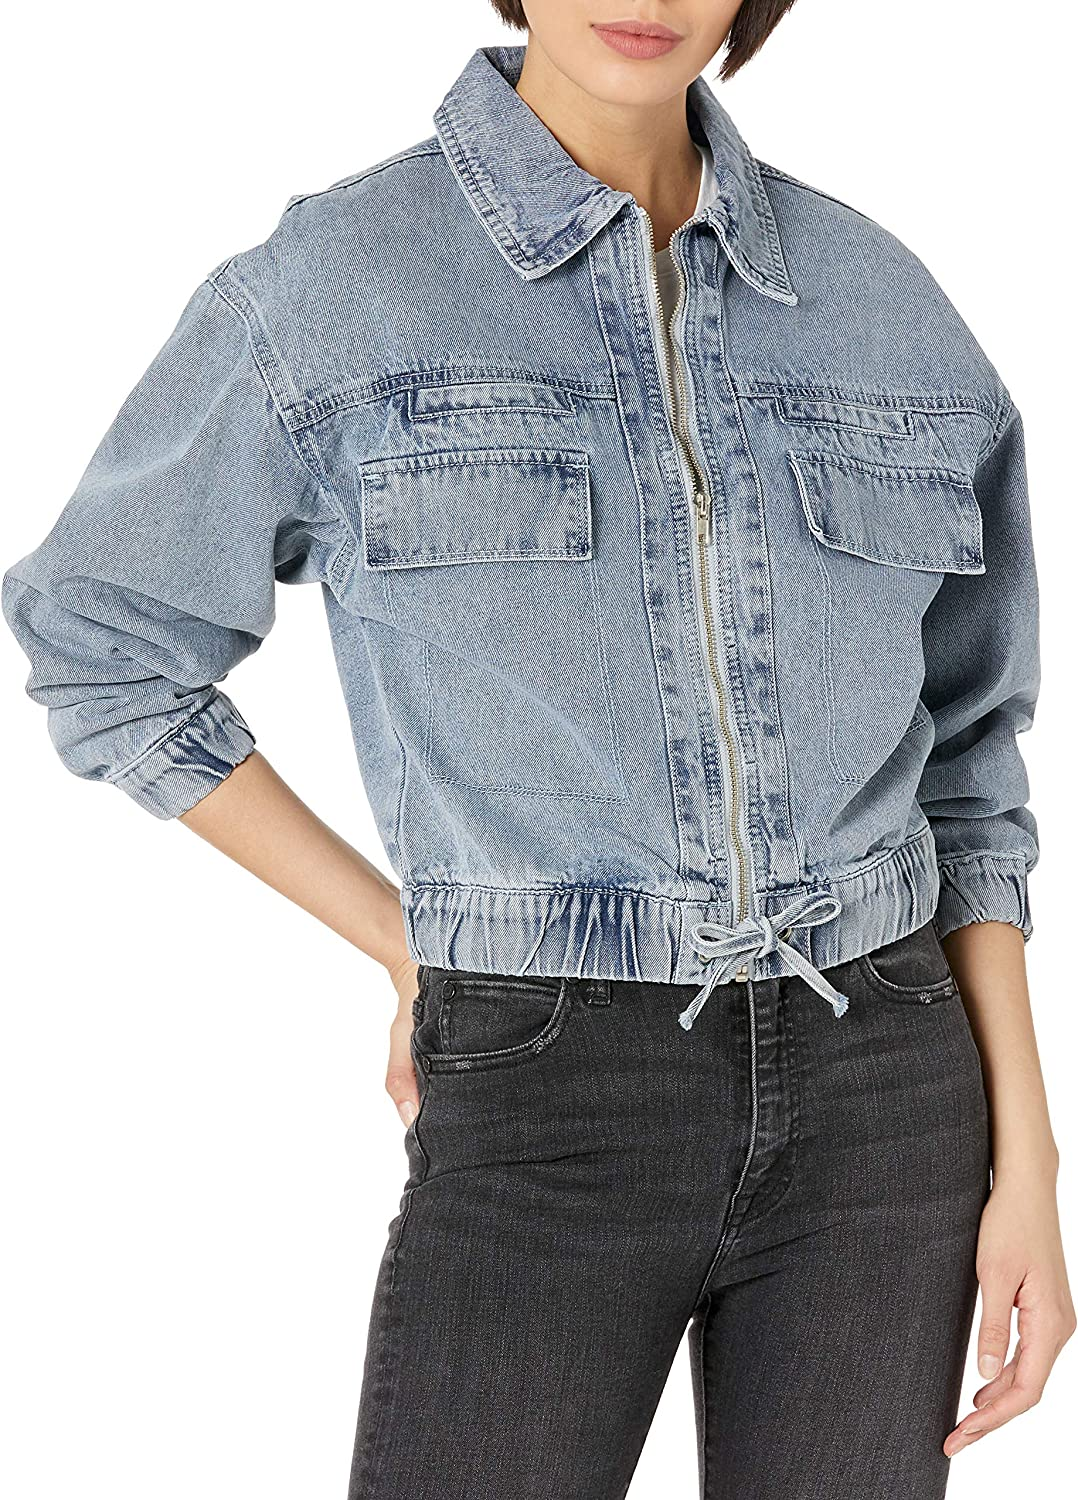 KENDALL + KYLIE Women's Zip Up Double Pocket Cropped Jacket